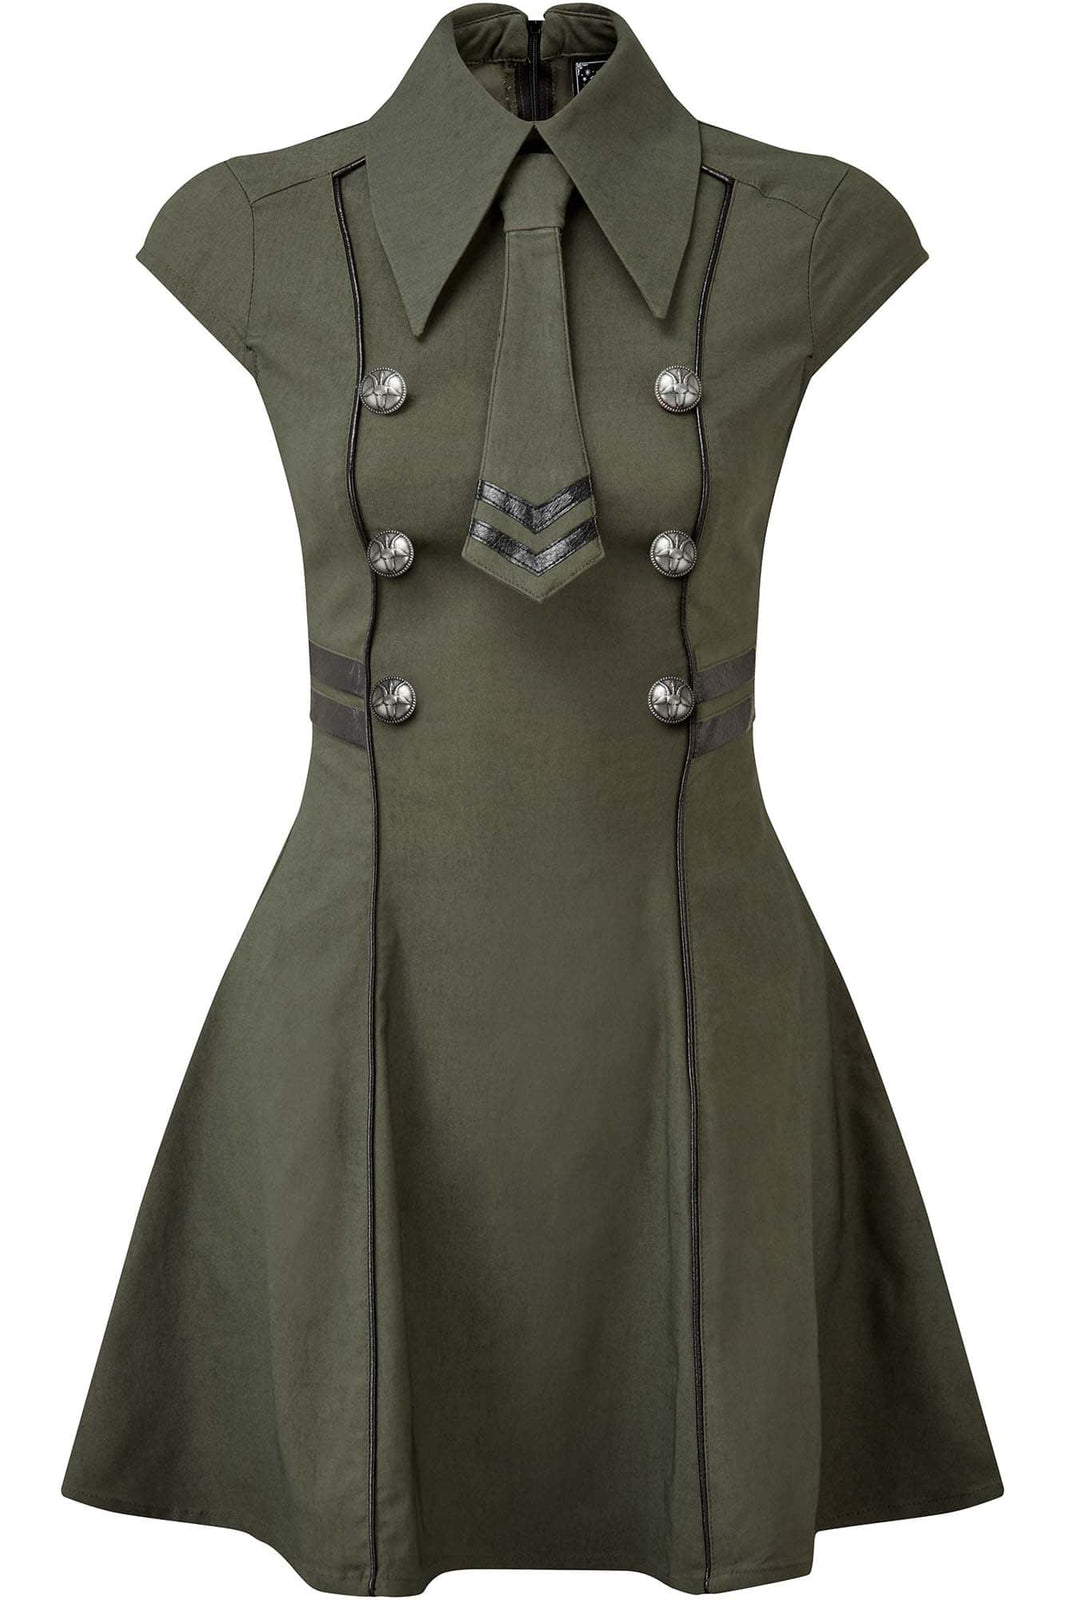 Black-Ops Skater Dress [KHAKI]